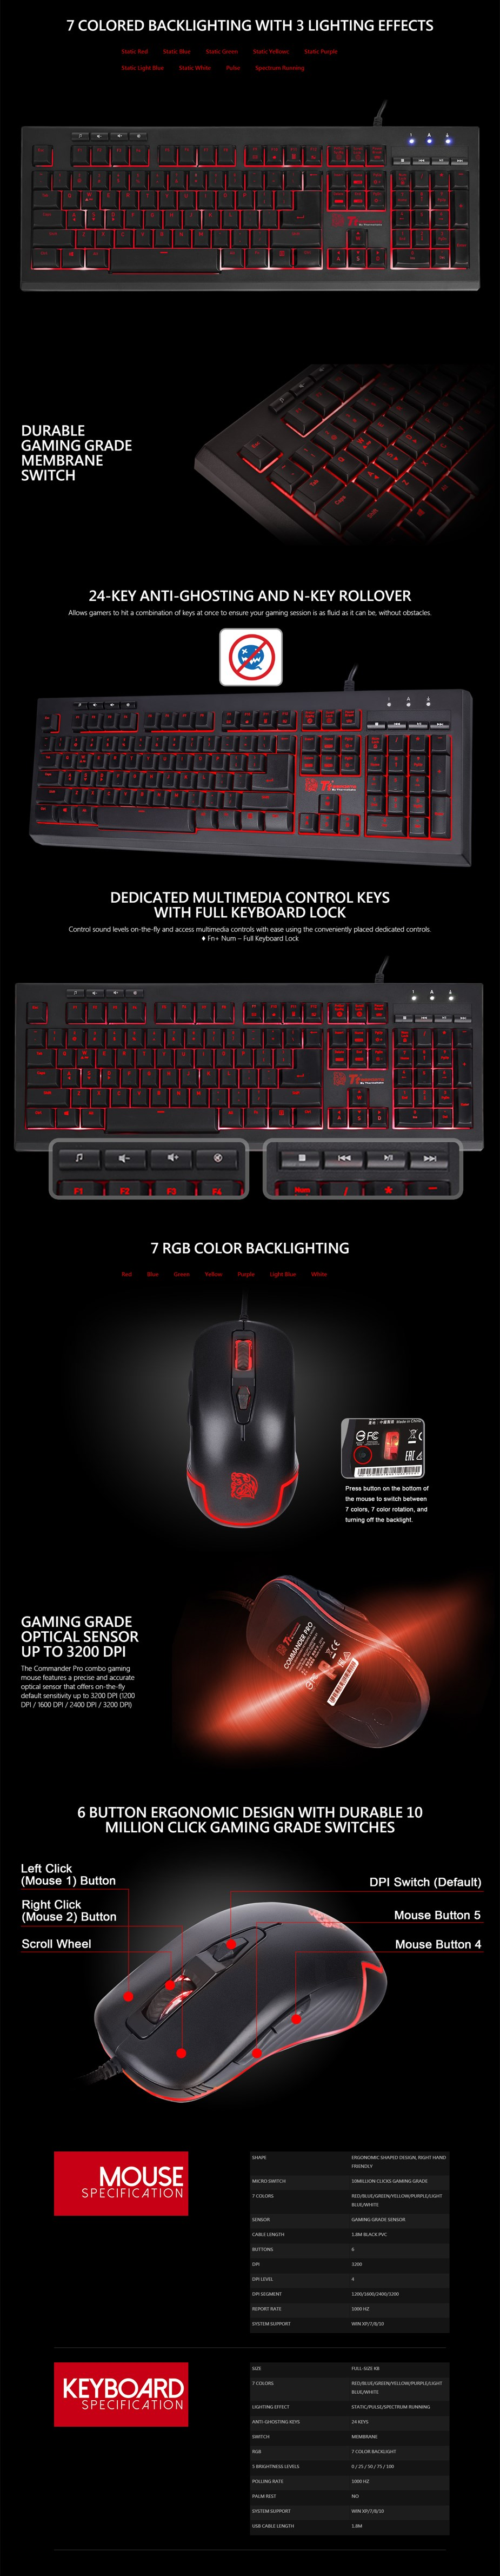 Tt eSPORTS Commander Pro Gaming Keyboard and Mouse Combo - Overview 1